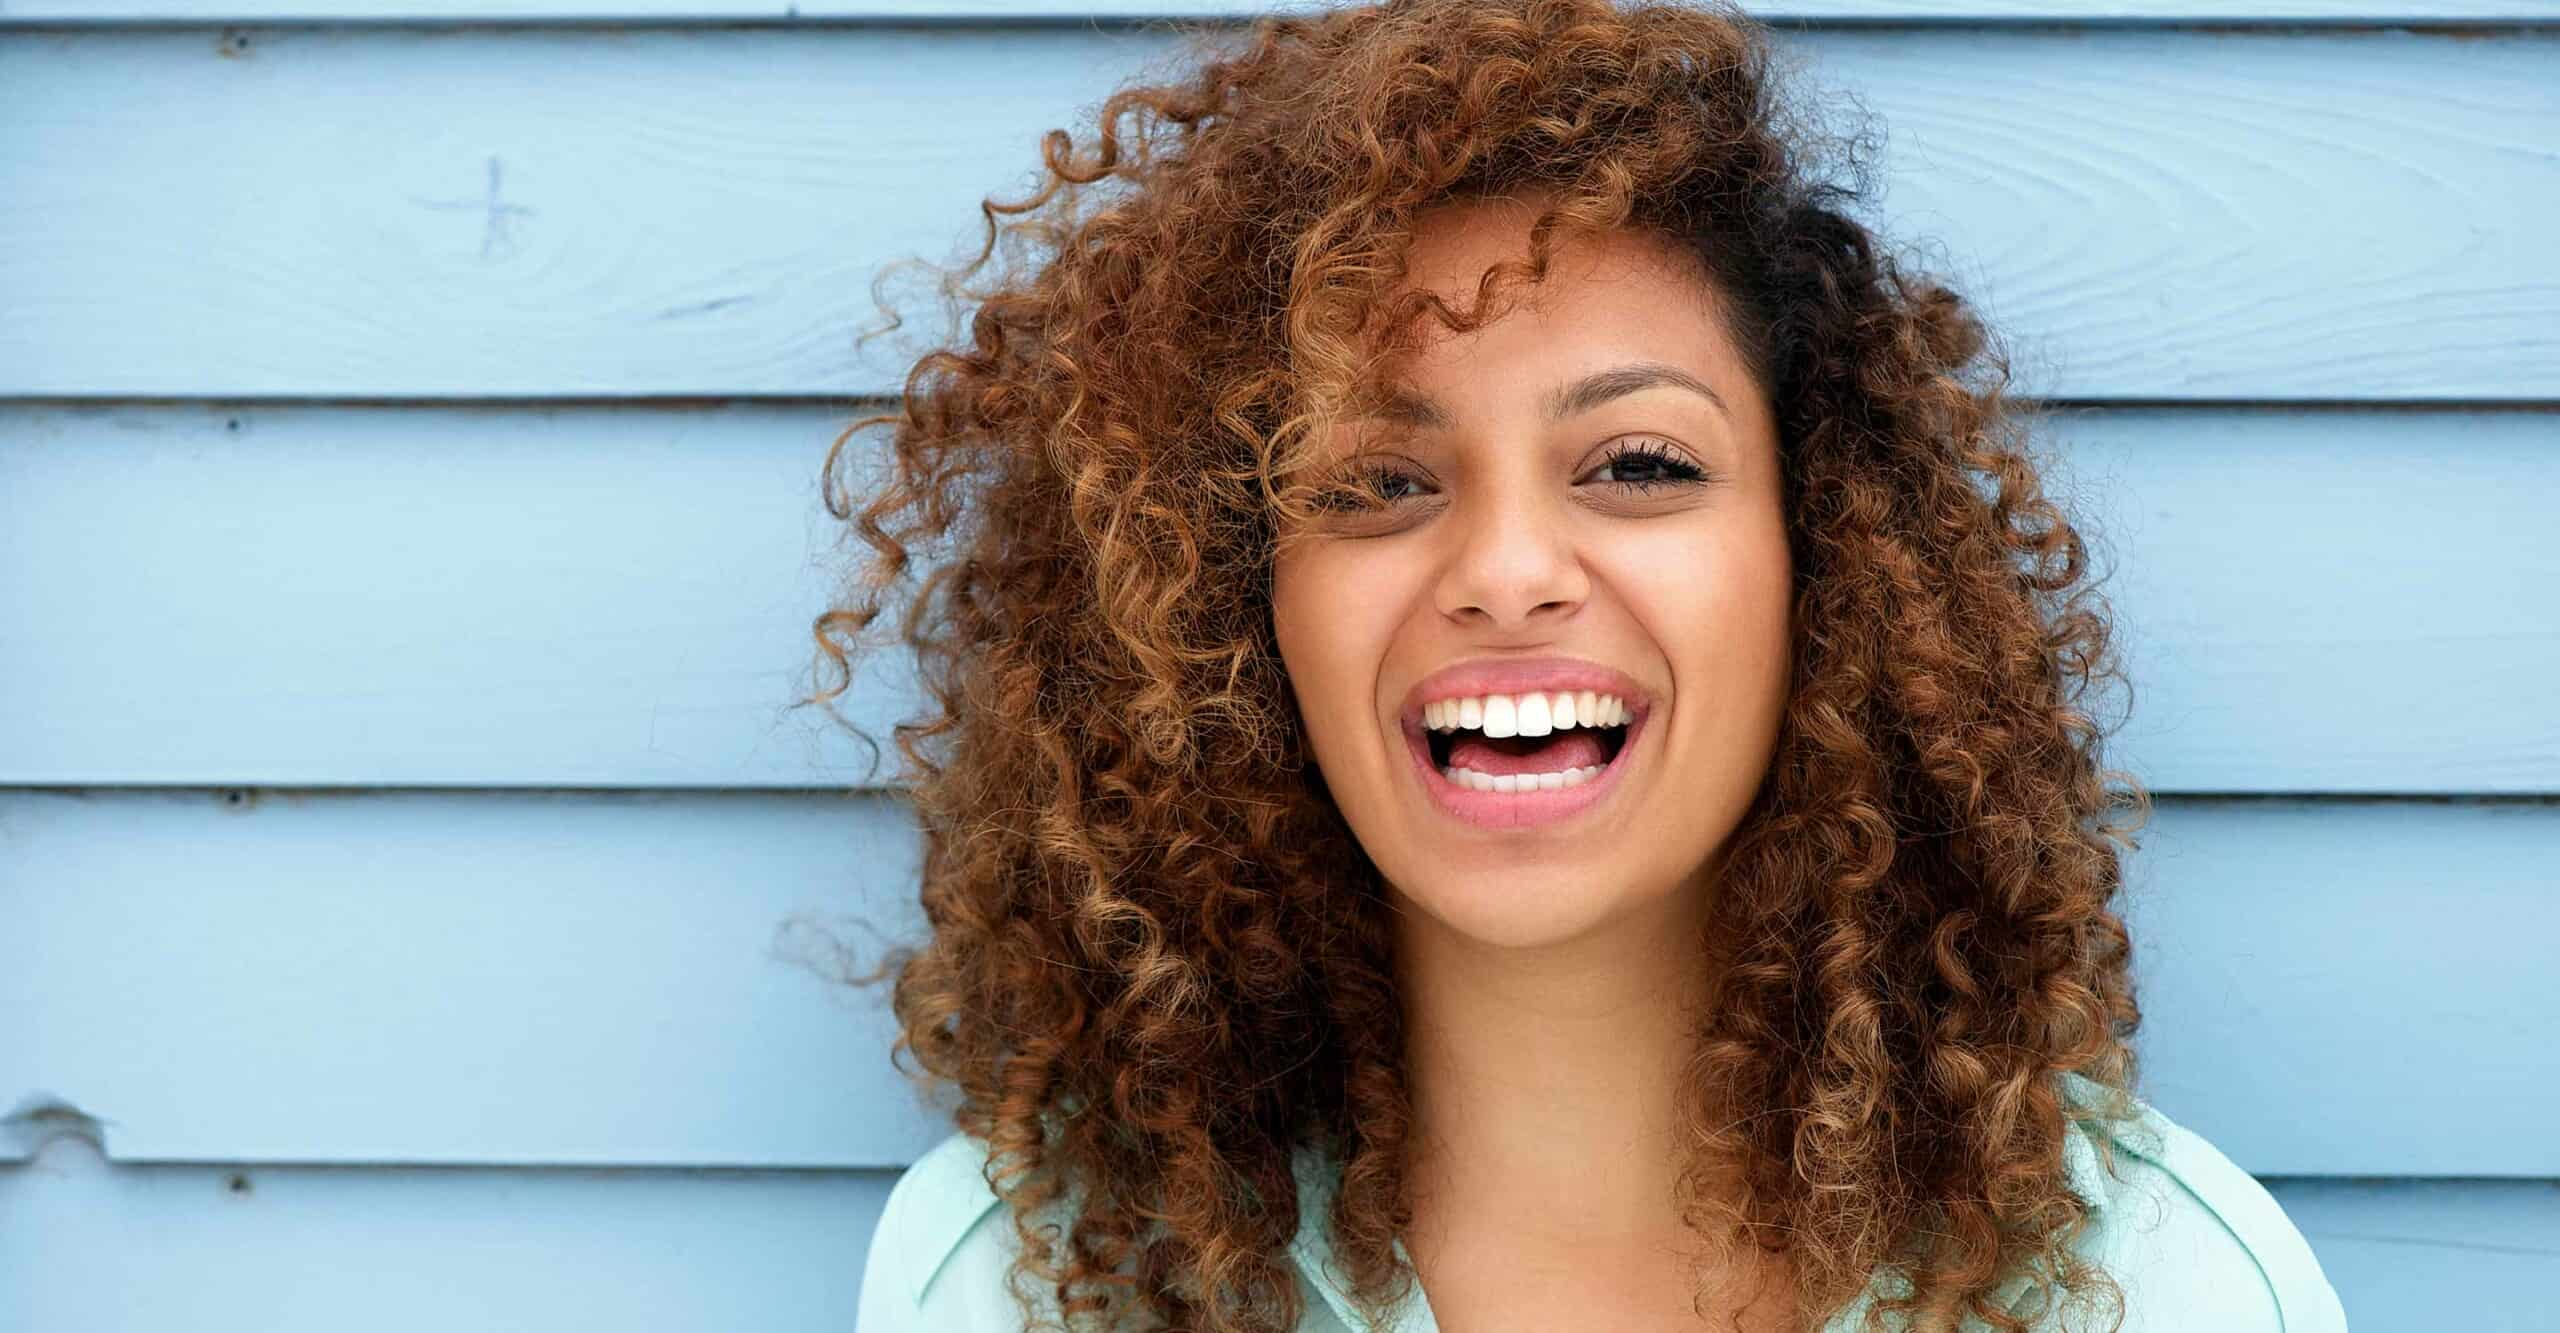 happy woman with curly hair